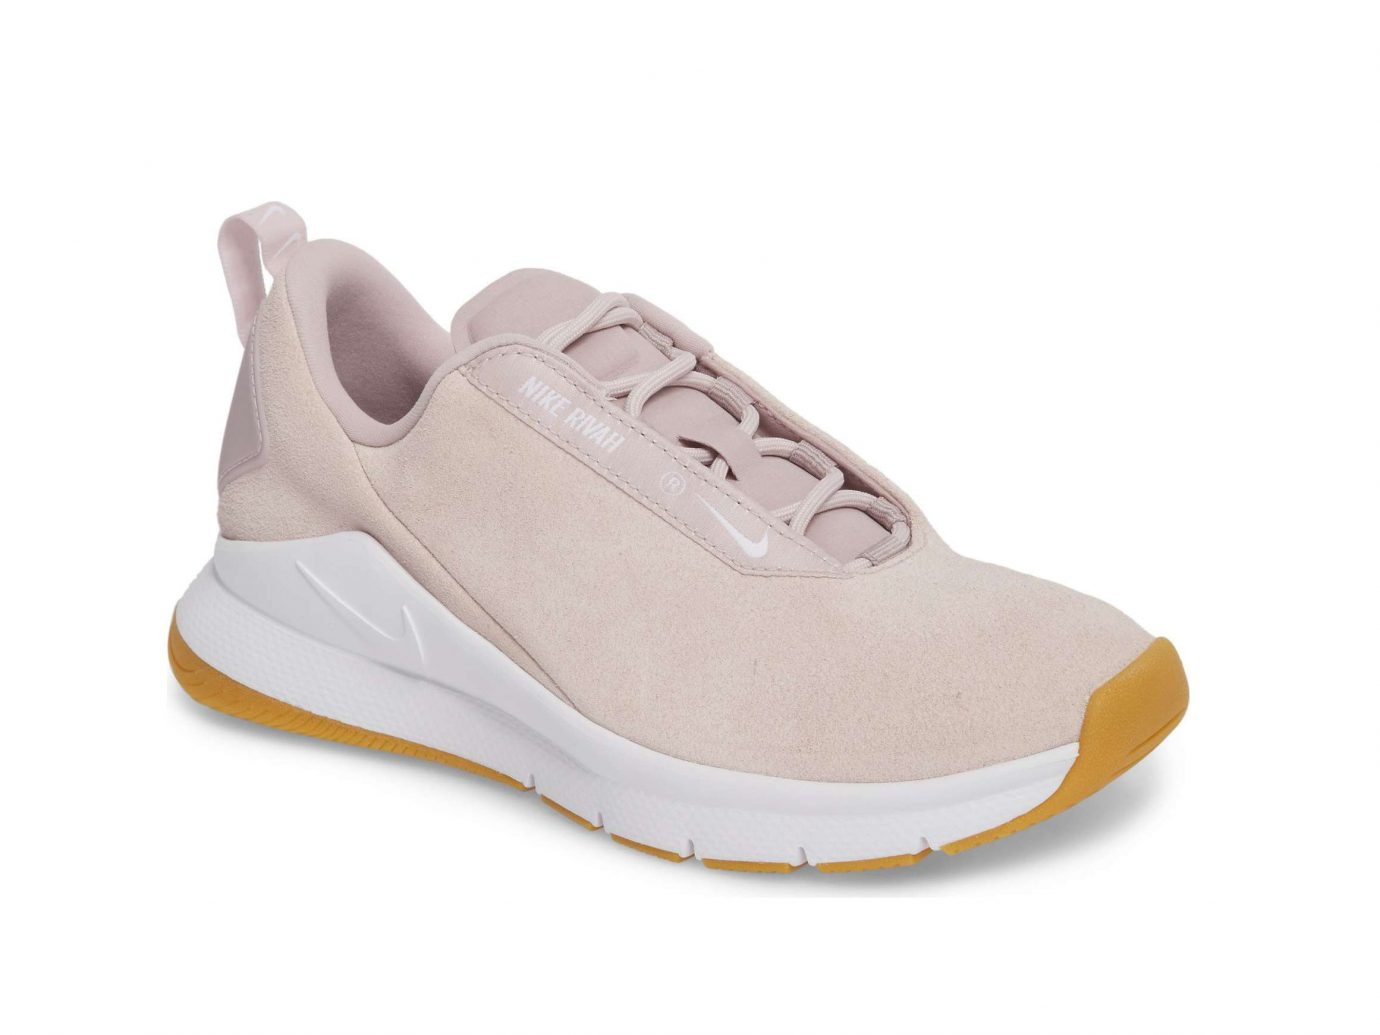 Health + Wellness Style + Design Travel Shop clothing footwear white shoe walking shoe product beige outdoor shoe product design sneakers cross training shoe tennis shoe running shoe sportswear